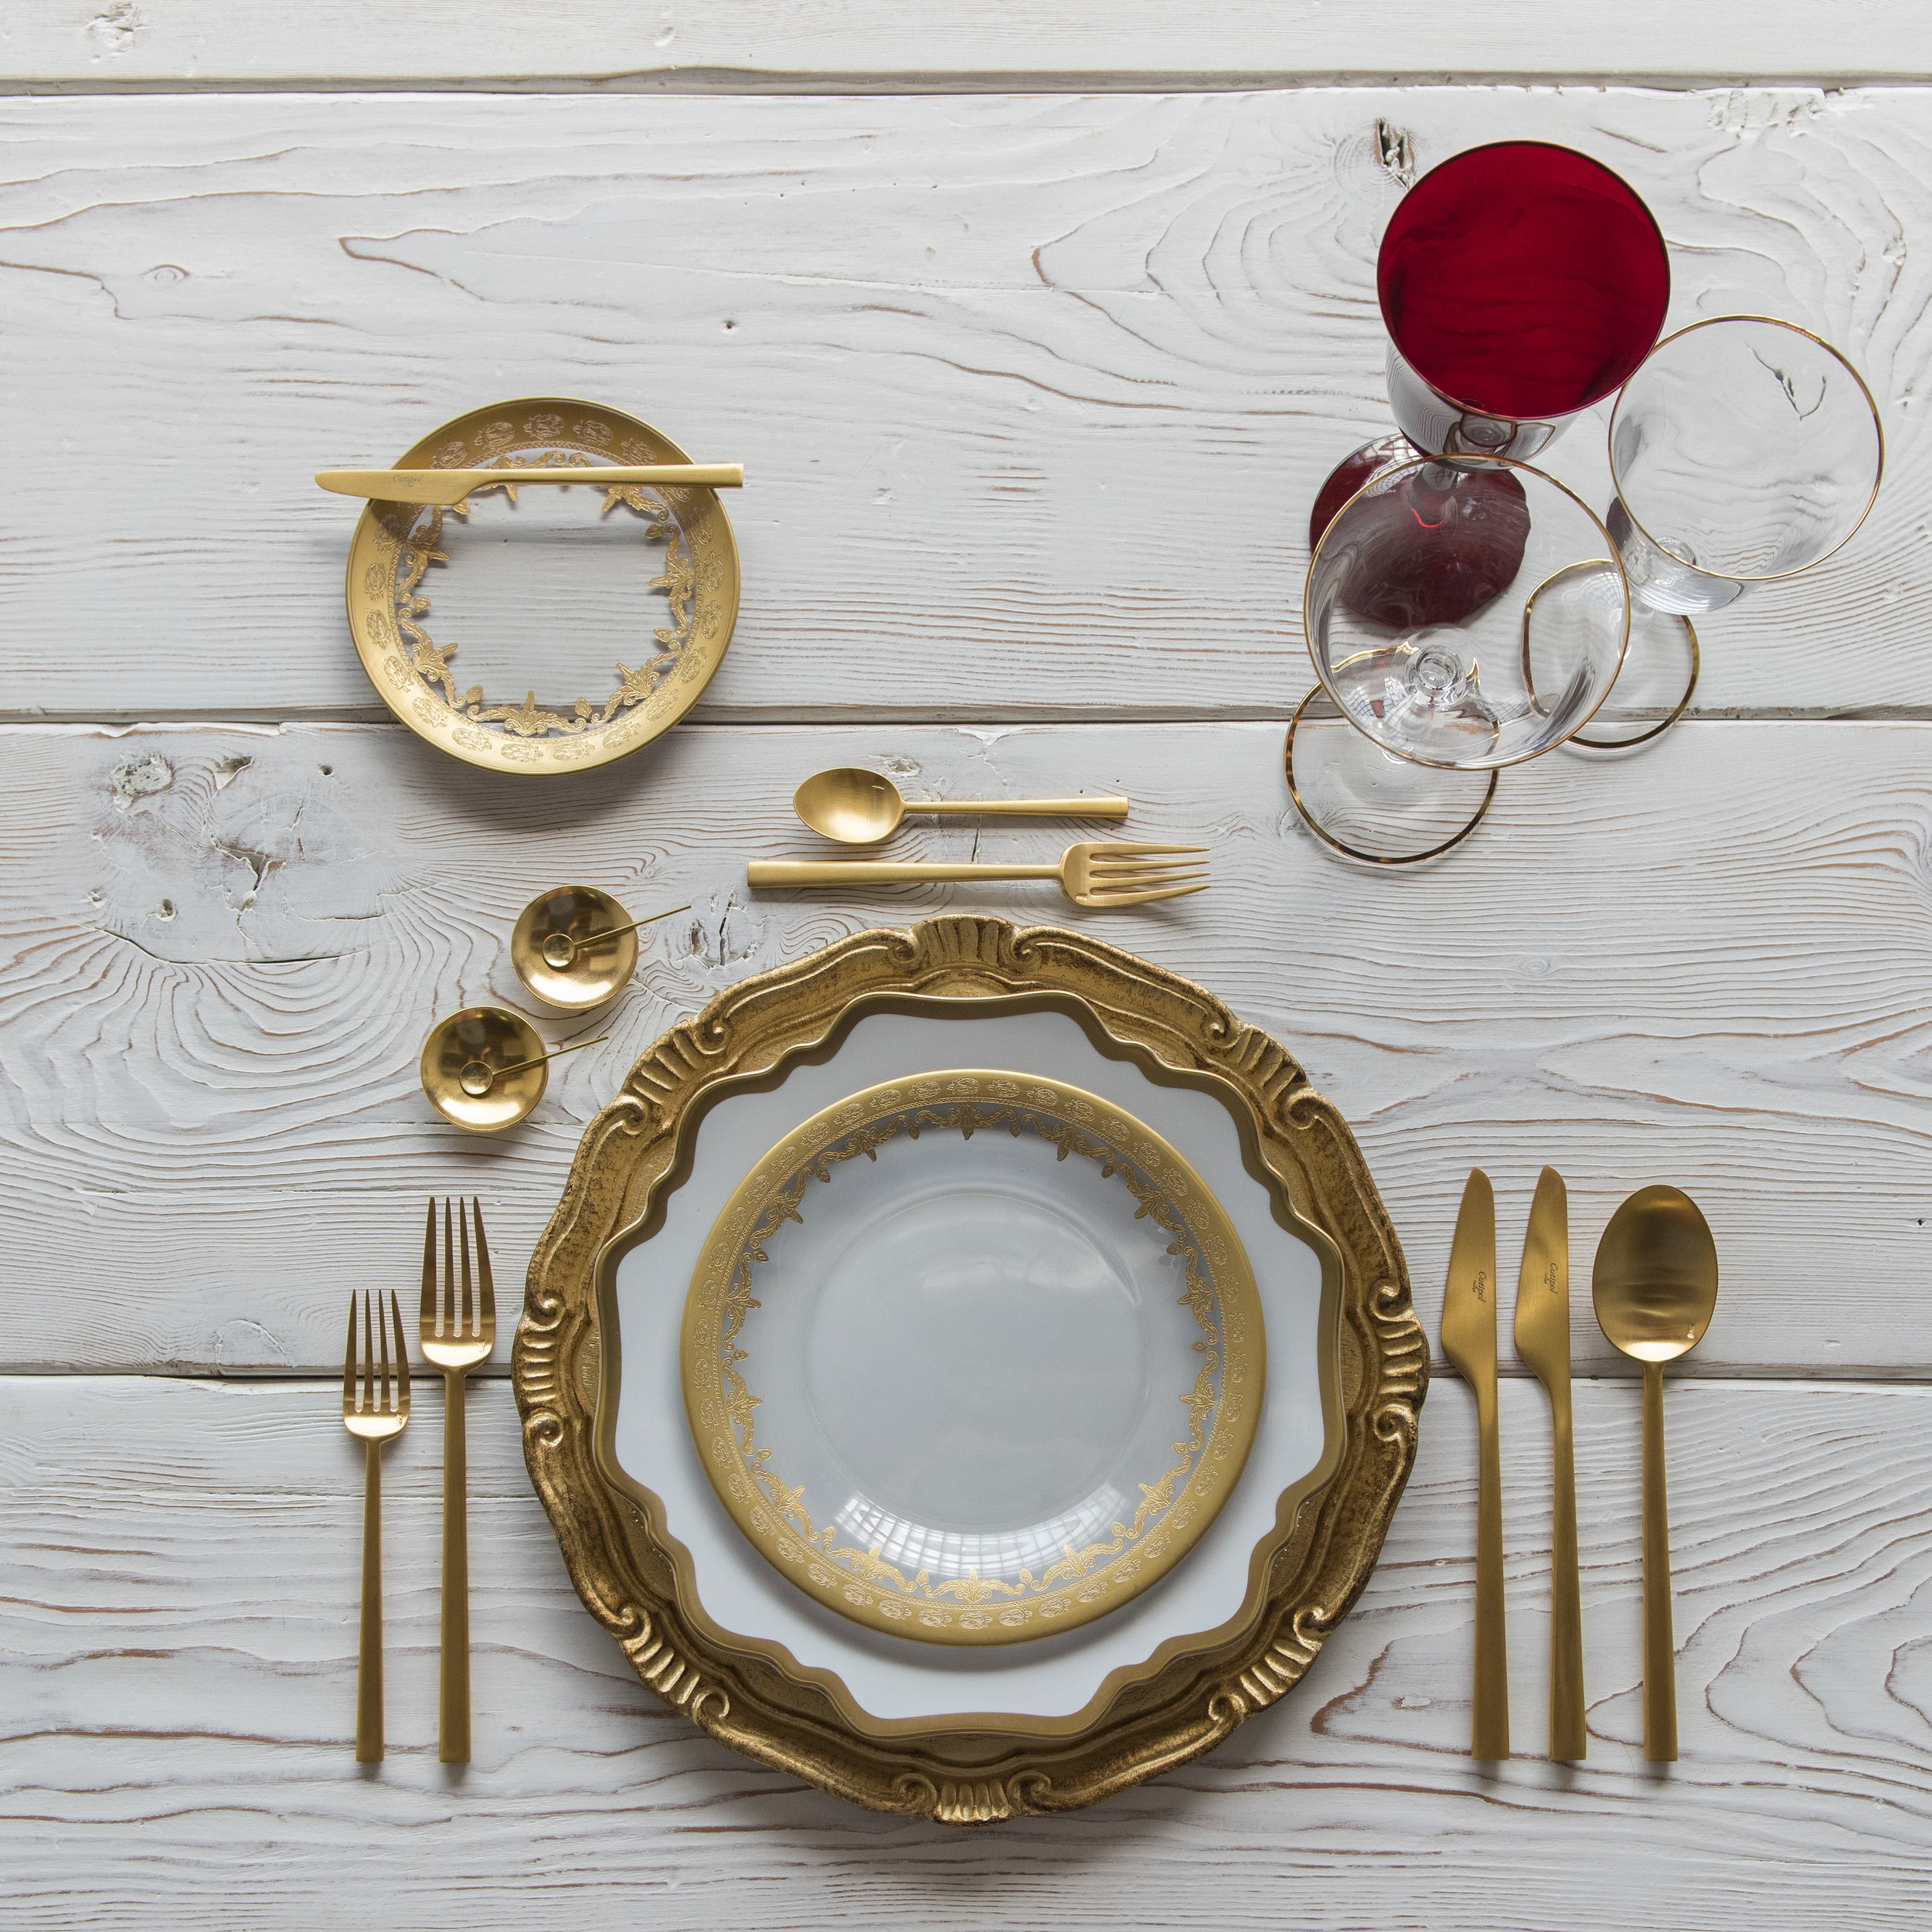 RENT: Florentine Chargers in Gold + Anna Weatherley Dinnerware in White/Gold + Versailles Glass Dinnerware in 24k Gold + Rondo Flatware in Brushed 24k Gold + Chloe 24k Gold Rimmed Stemware + Chloe 24k Gold Rimmed Goblet in Ruby + 14k Gold Salt Cellars + Tiny Gold Spoons  SHOP: Florentine Chargers in Gold + Anna Weatherley Dinnerware in White/Gold + Rondo Flatware in Brushed 24k Gold + Chloe 24k Gold Rimmed Stemware + 14k Gold Salt Cellars + Tiny Gold Spoons